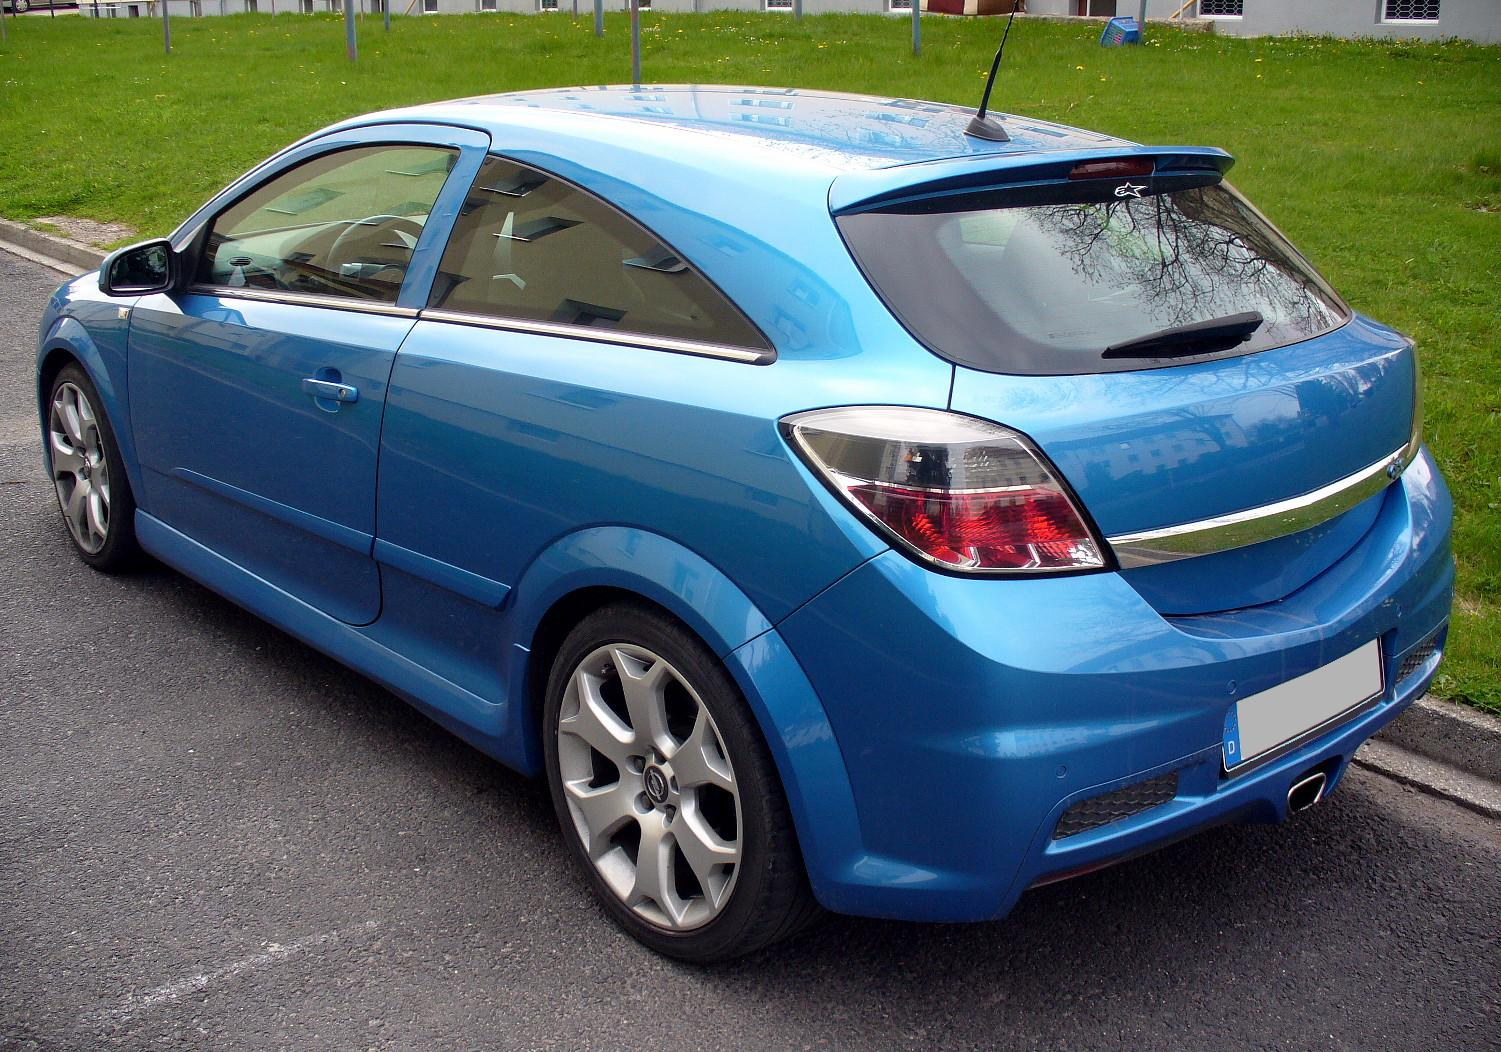 Opel astra h opc 2005 opel astra h opc 2005 photo 06 car in - 2004 2007 Opel Astra Gtc 2005 2007 Opel Astra Twintop 2006 2007